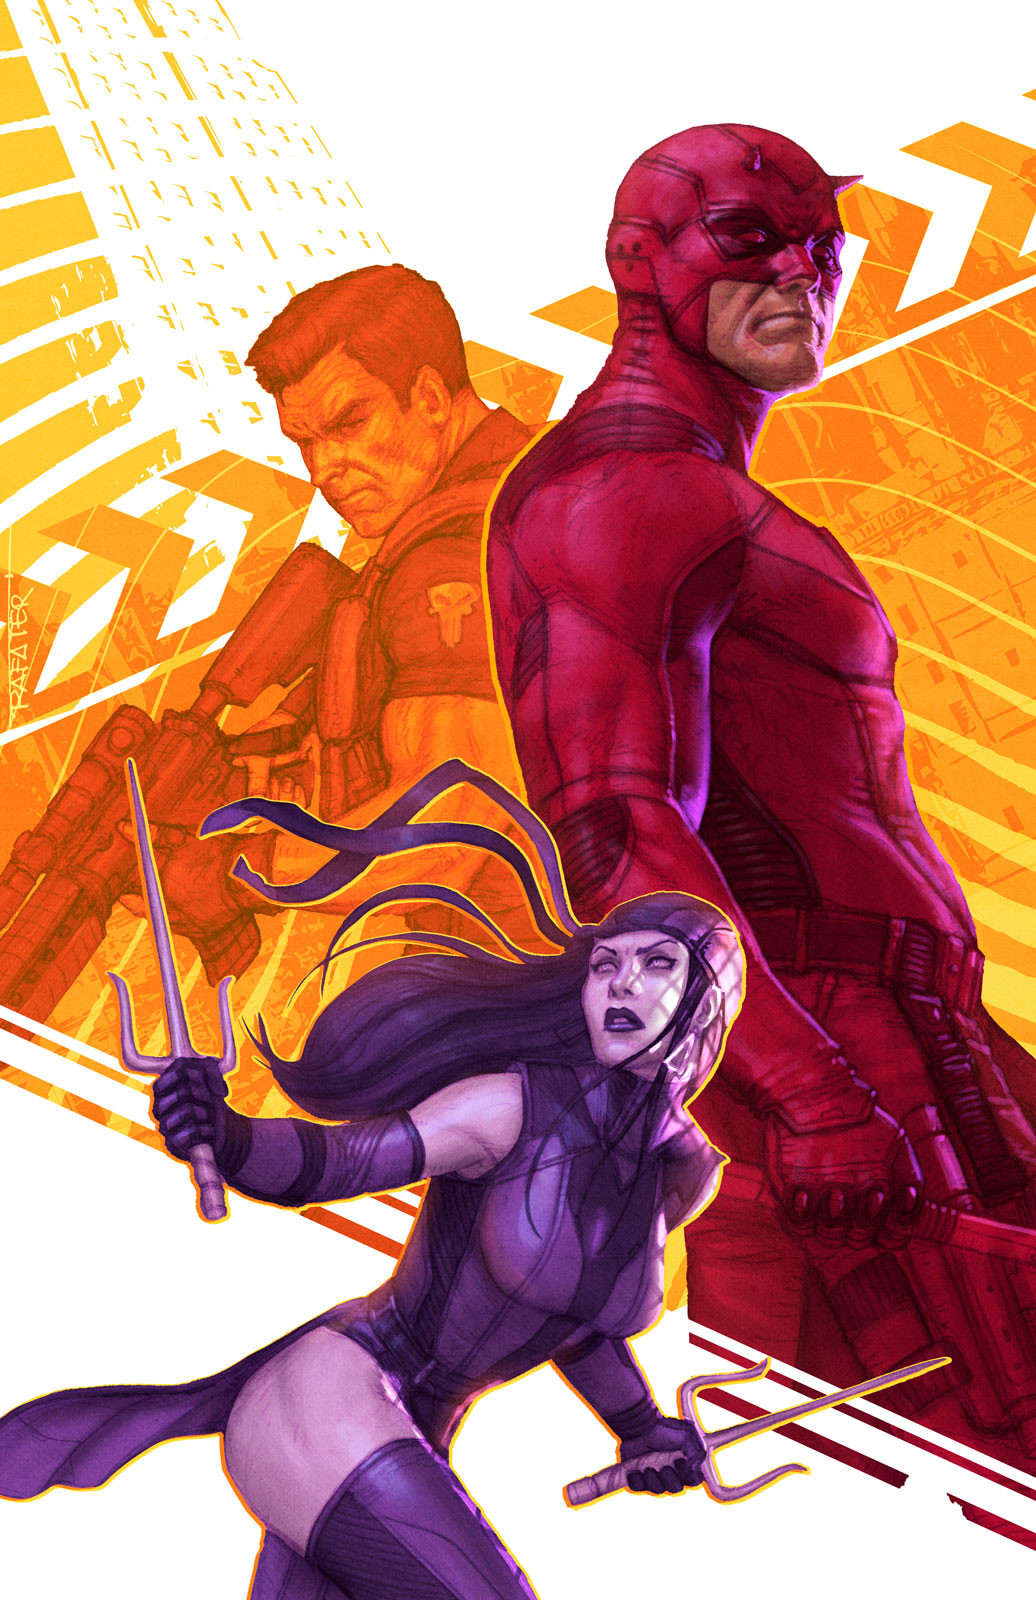 Elektra, Daredevil and the Punisher